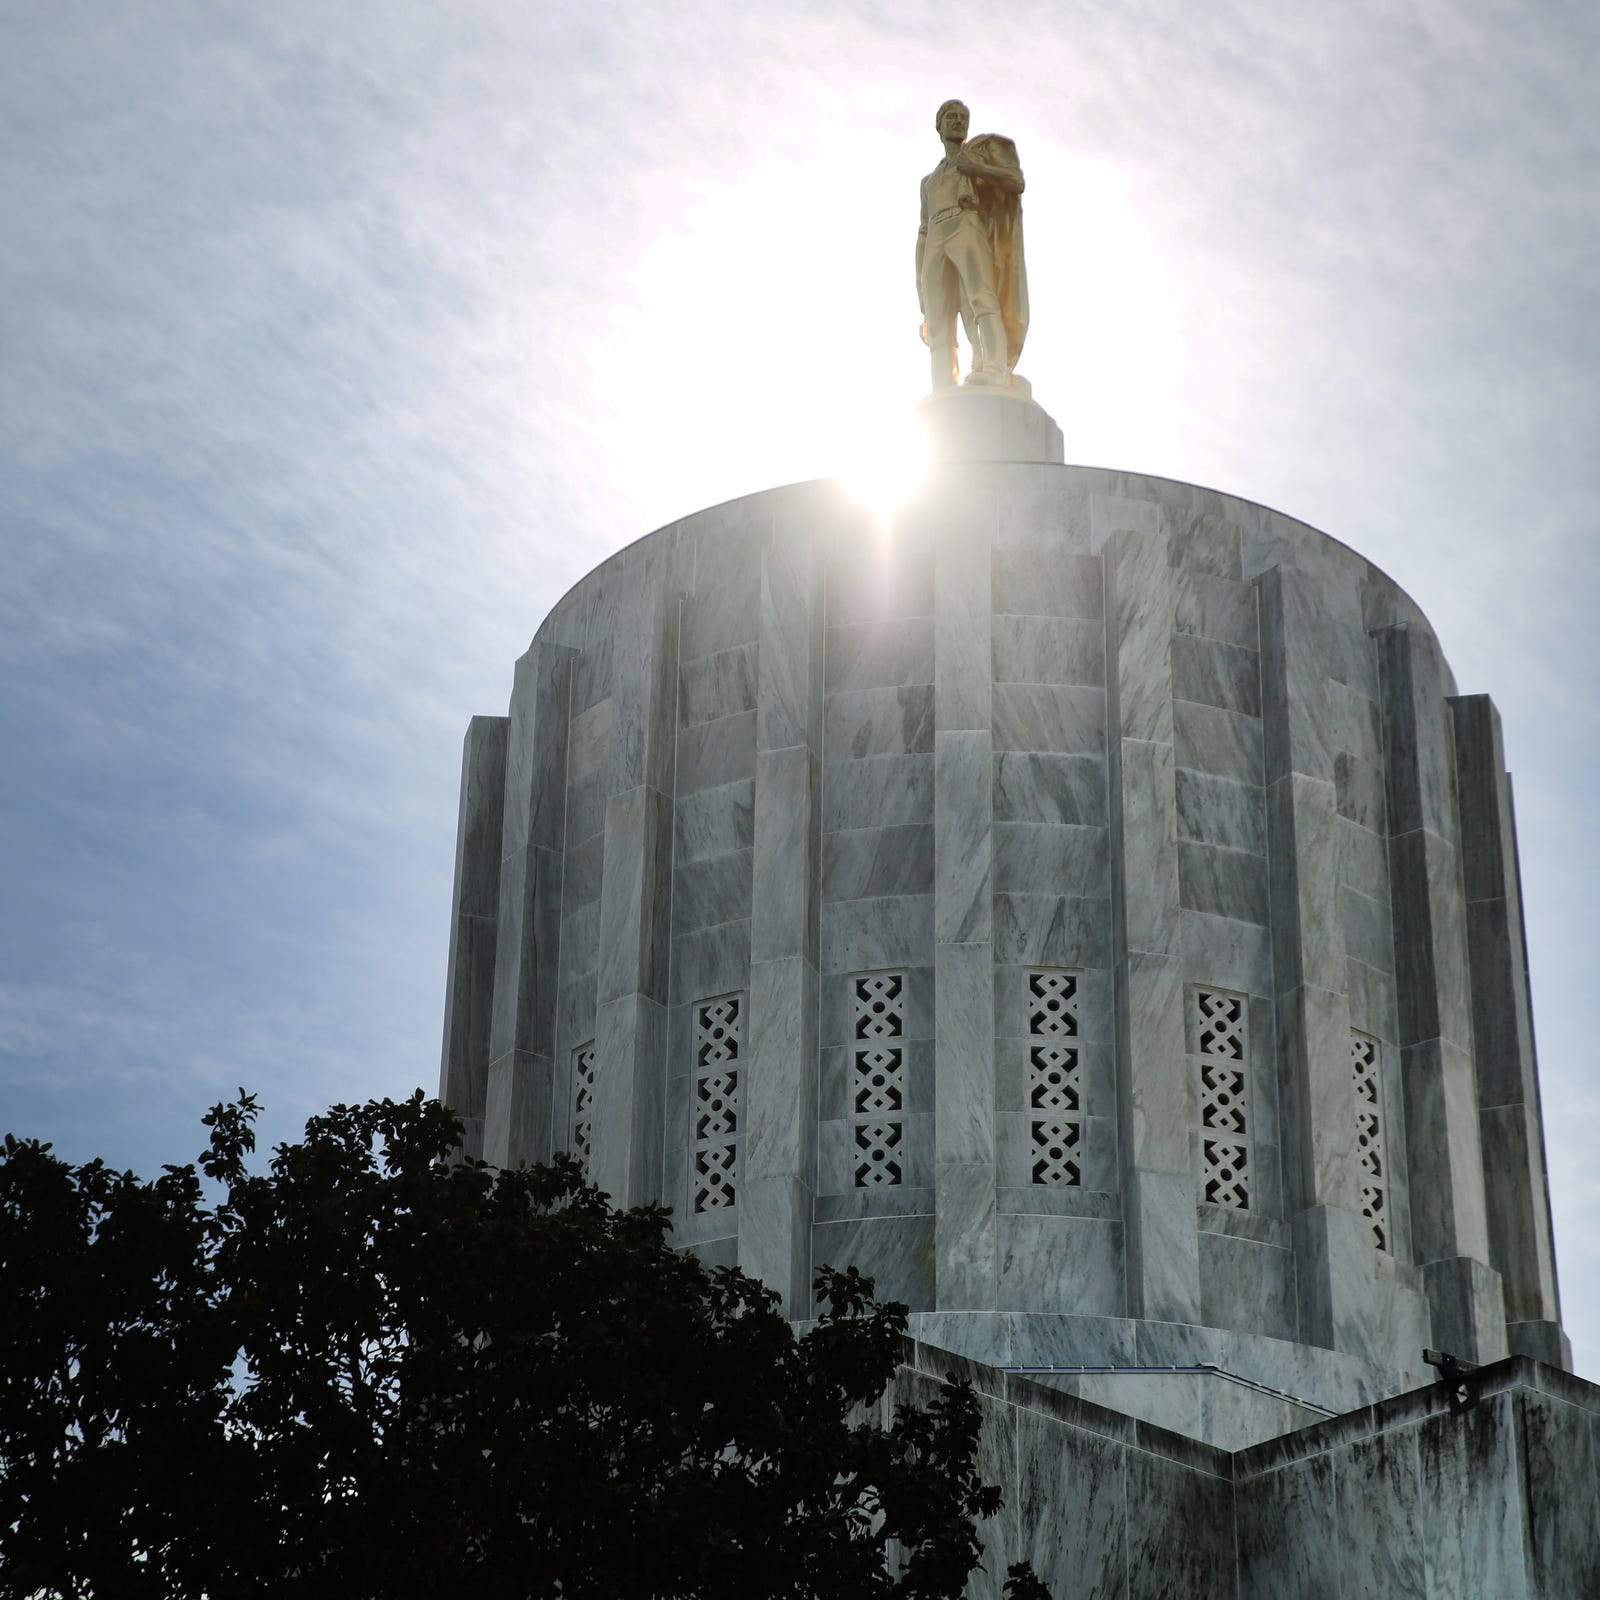 Oregon sees 'historic windfall' with tax revenue, largest kicker in state history